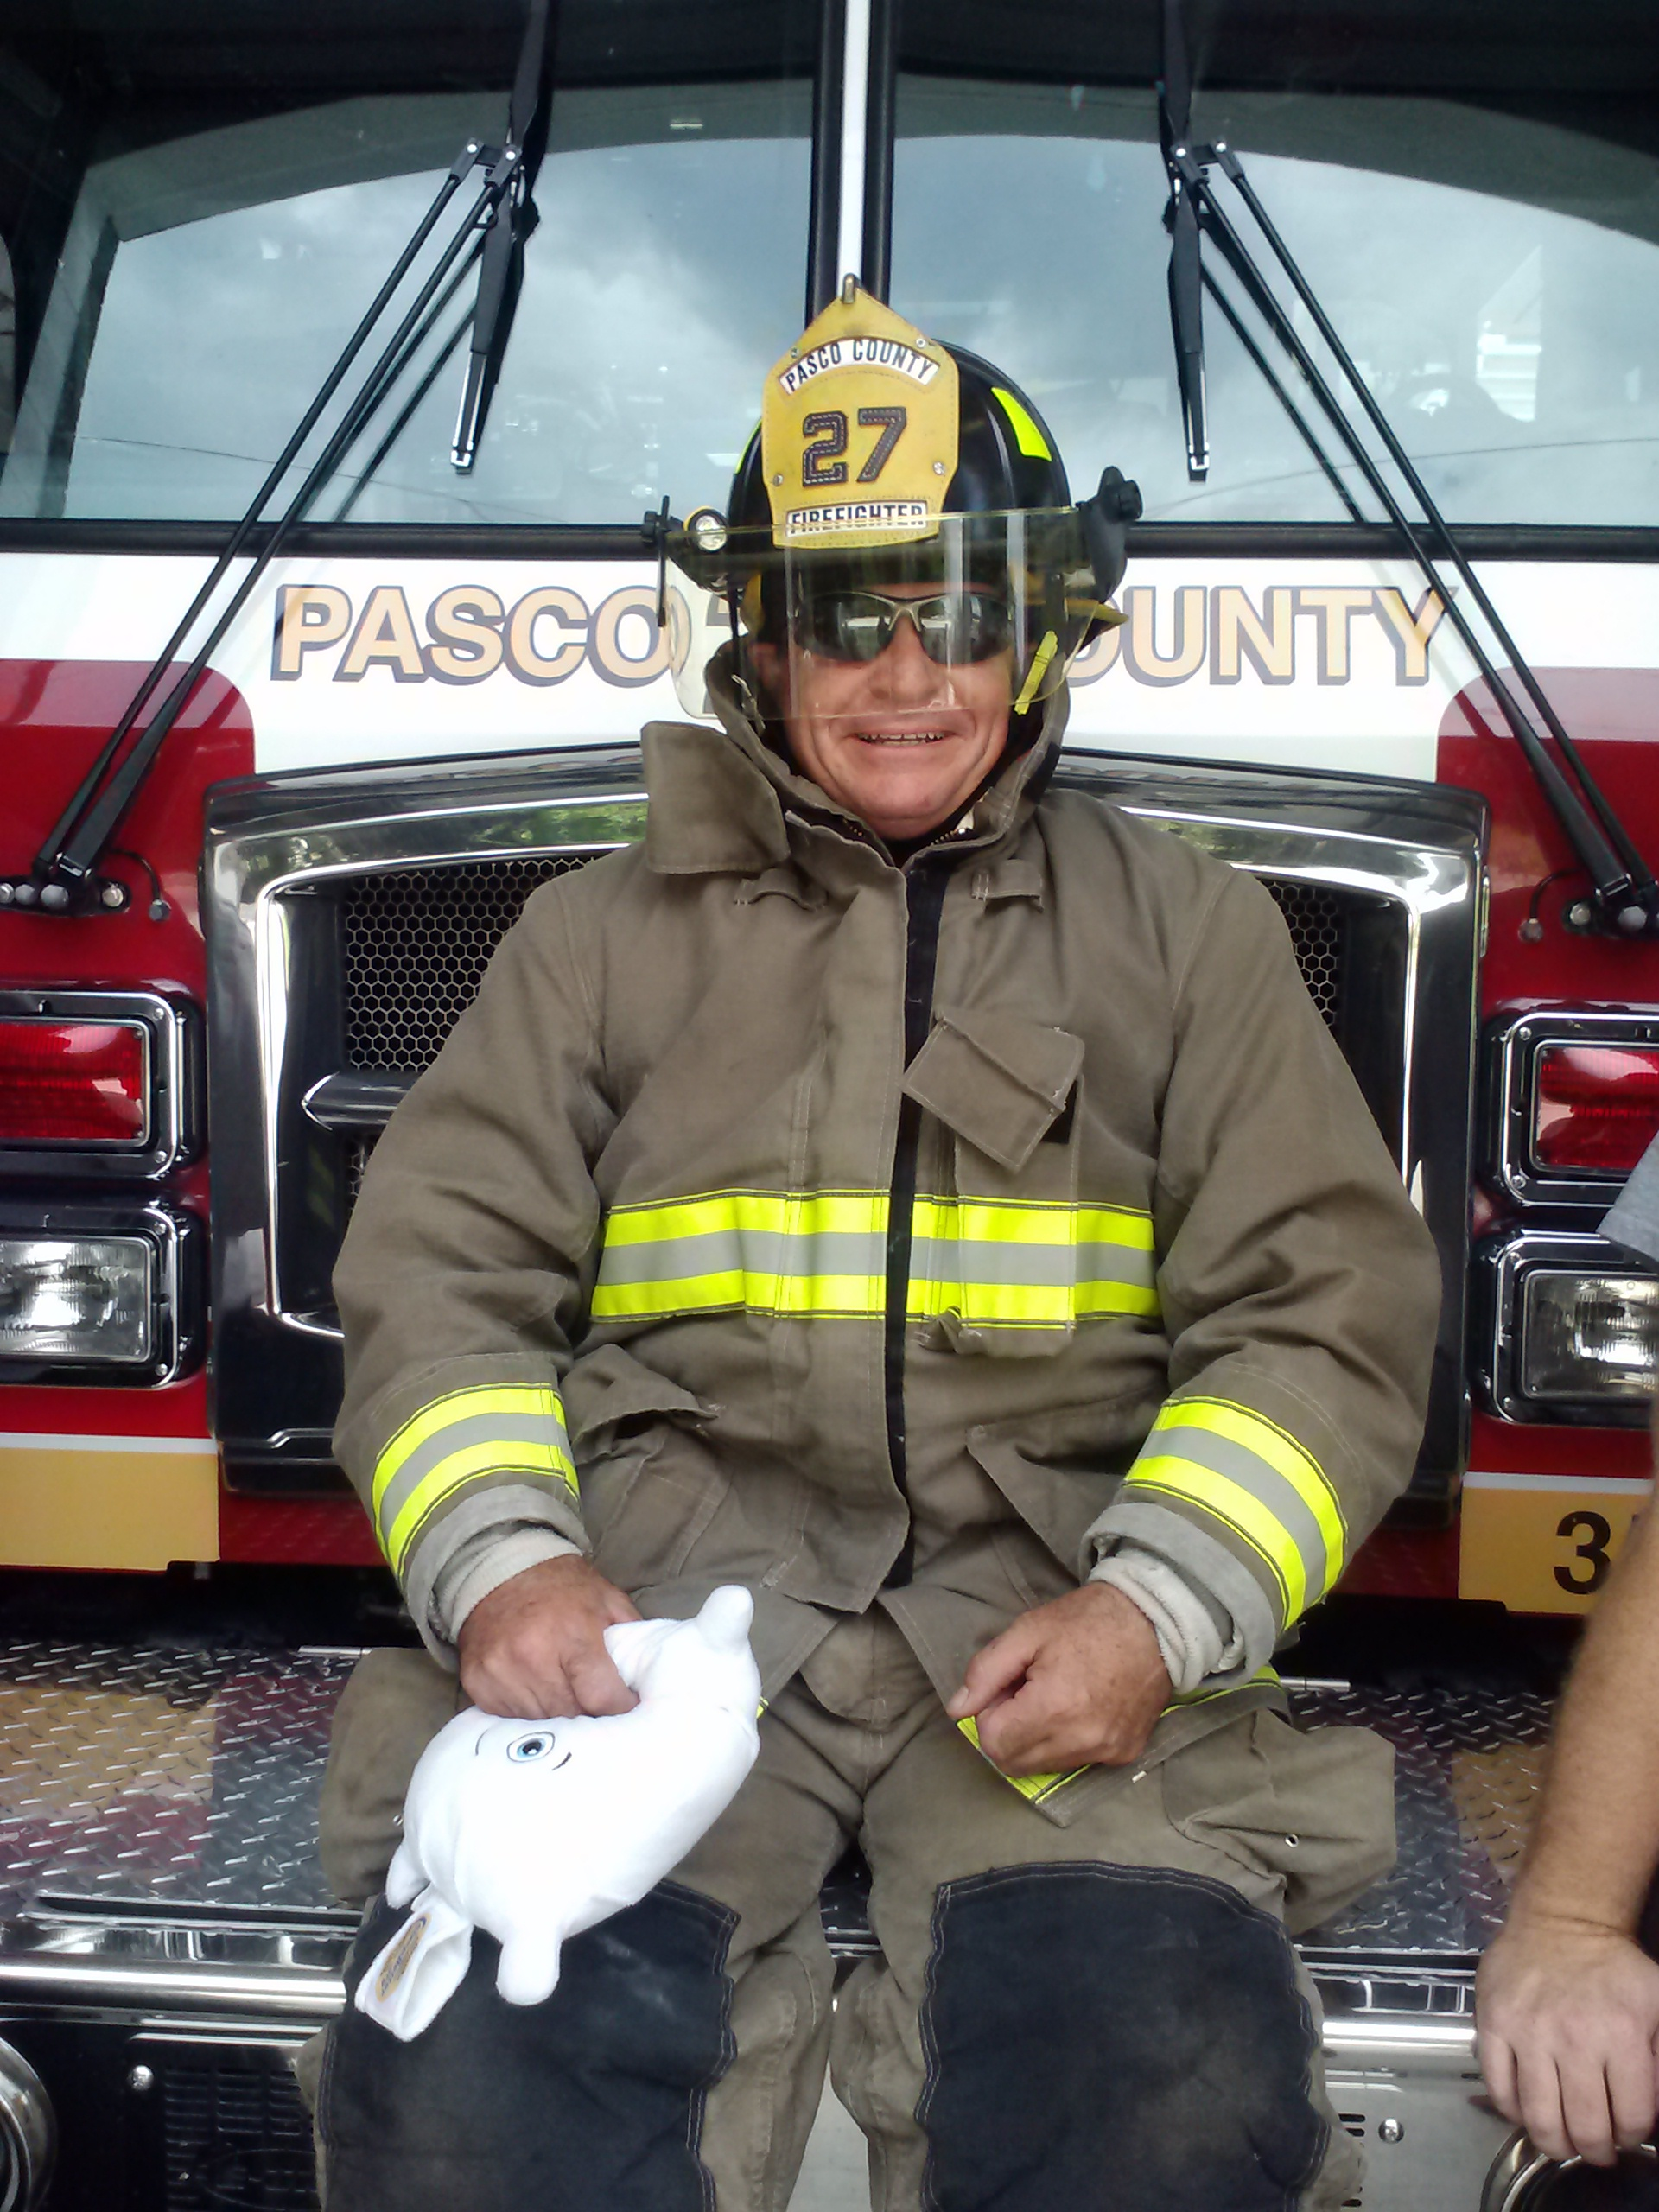 Up close and personal with a first responder